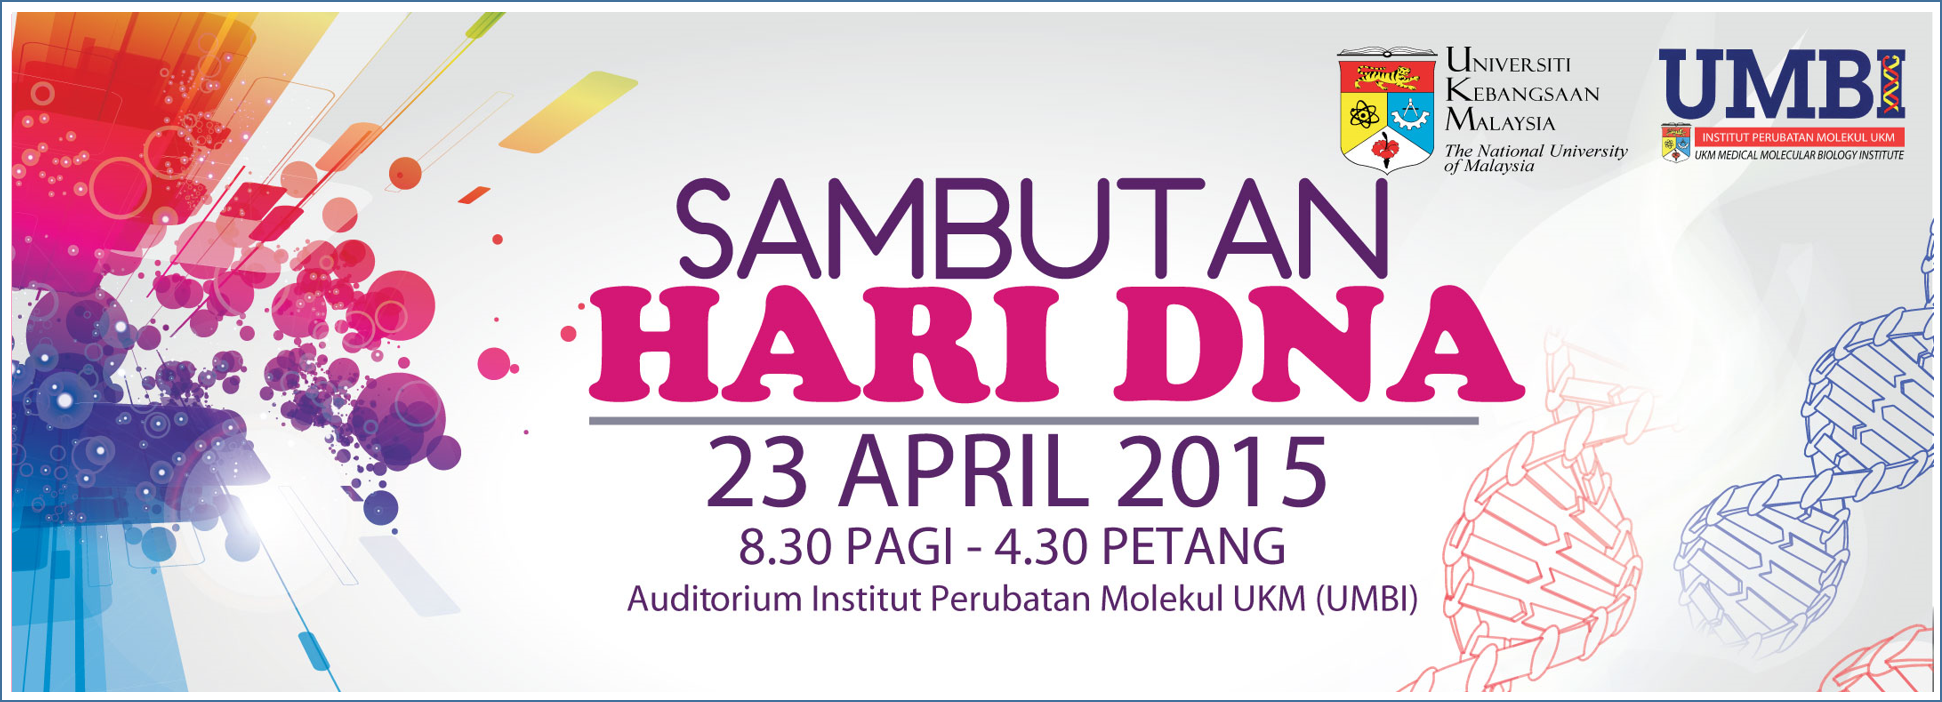 Dna Day 2015